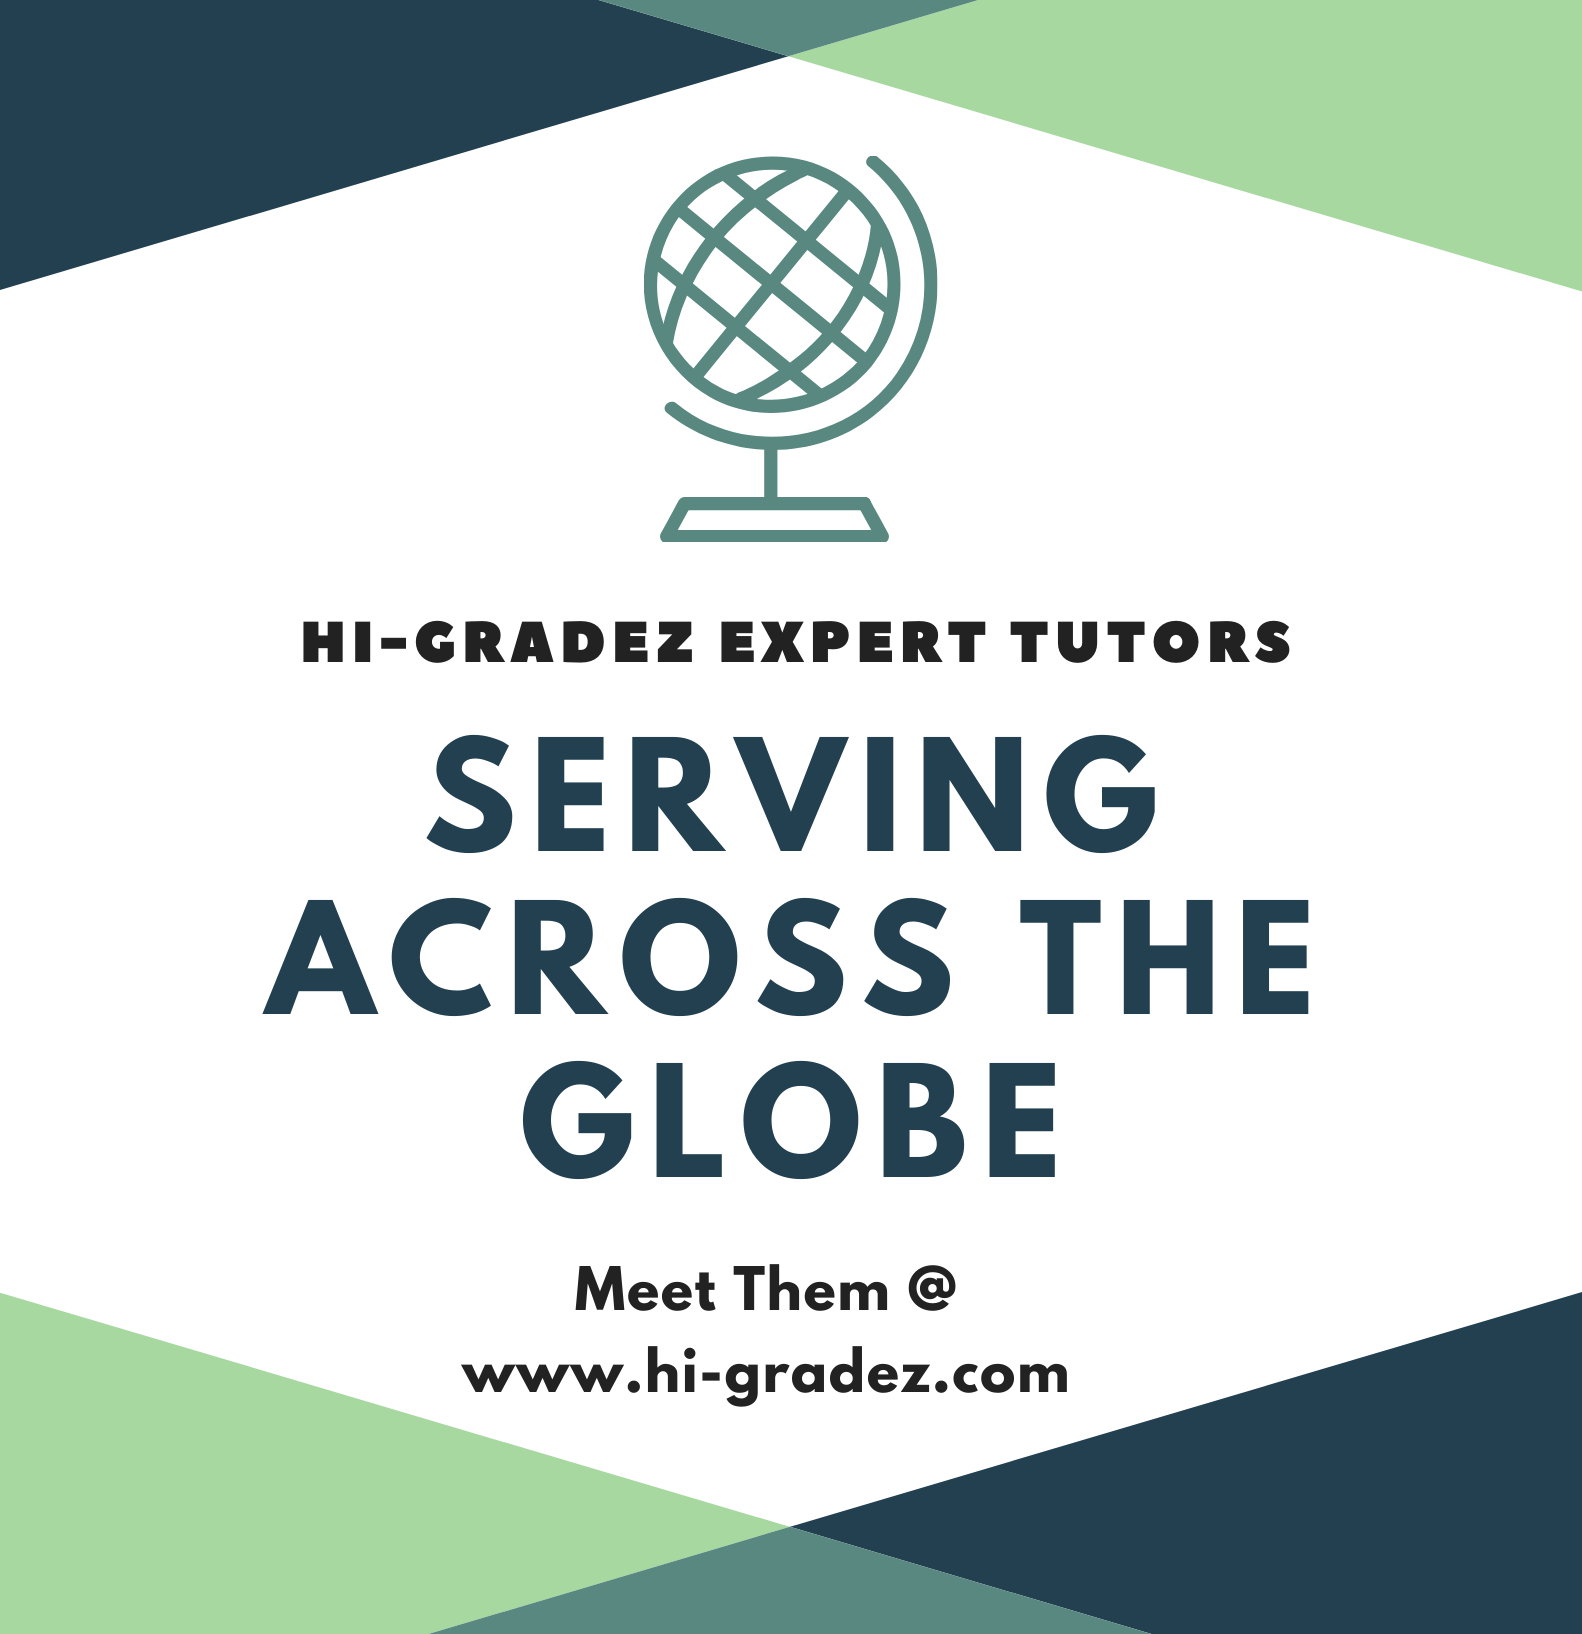 Proudly Serving Students Across The Globe In 2020 Online Tutoring Illinois Institute Of Technology Chicago State University